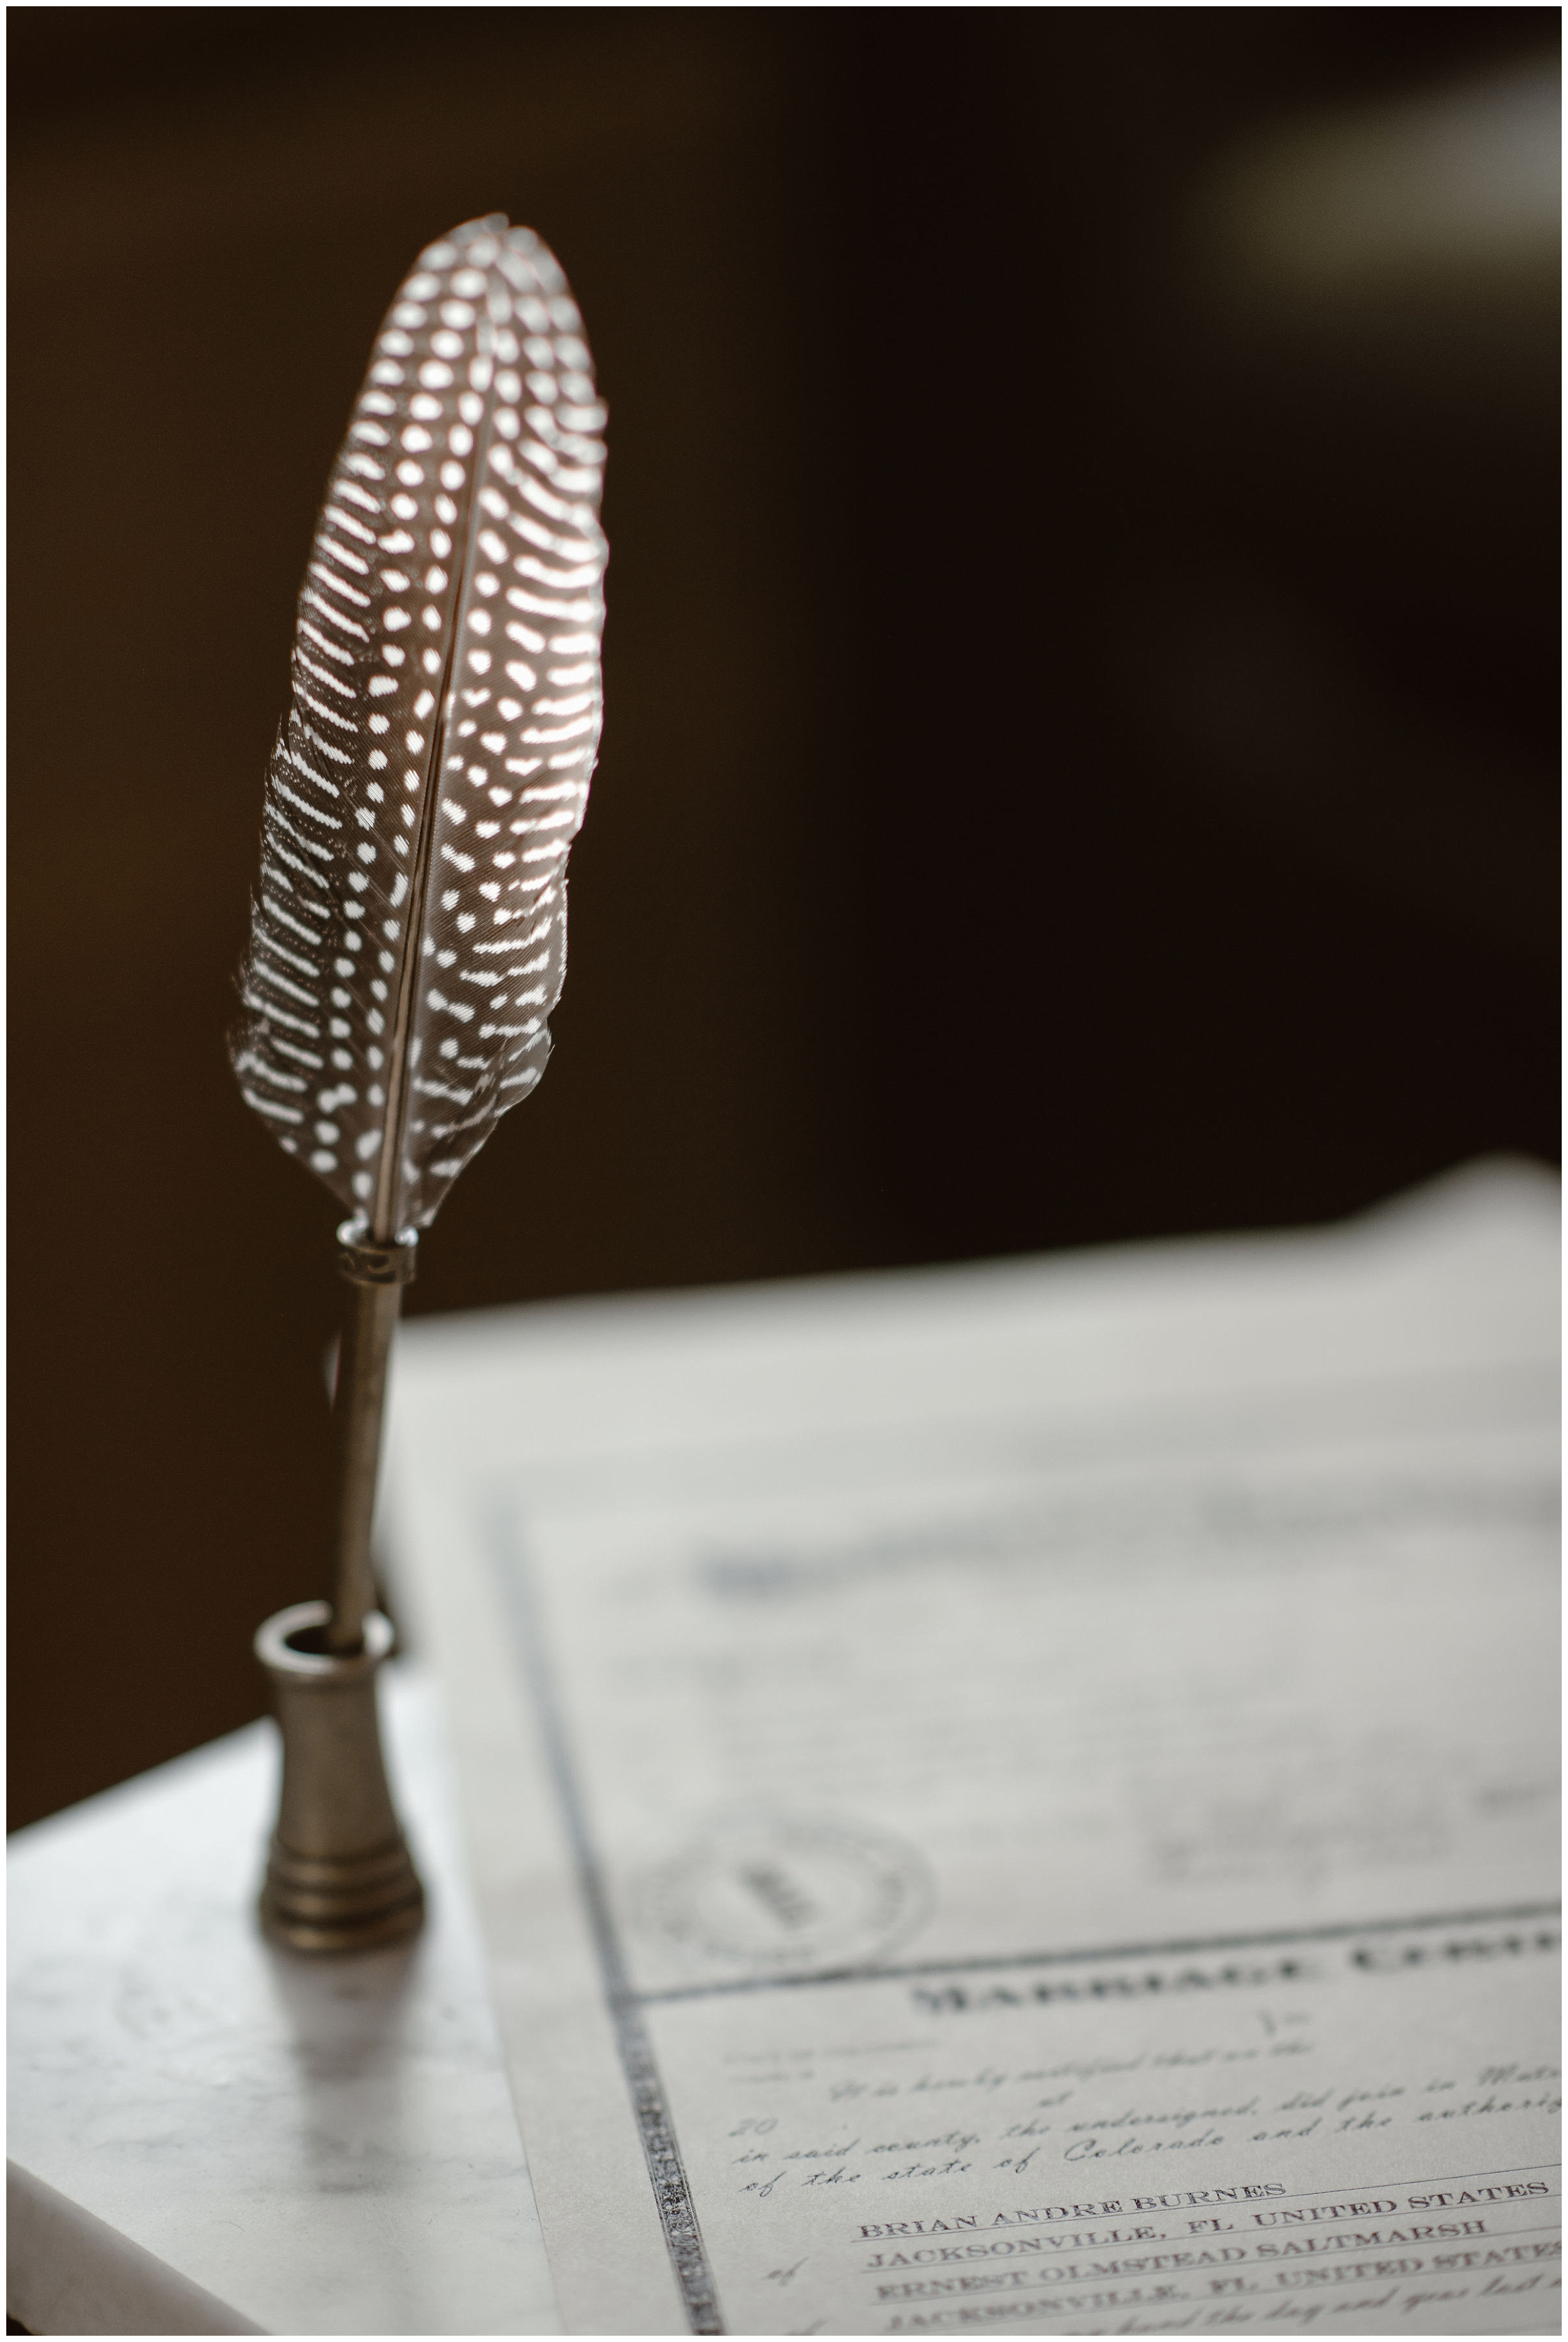 An old-fashioned quill pen stands on a marble counter top next to the faint image of a marriage license. Brian and Ernie, the couple getting married, chose to sign their marriage license during their elopement ceremony of their Colorado mountain wedding.